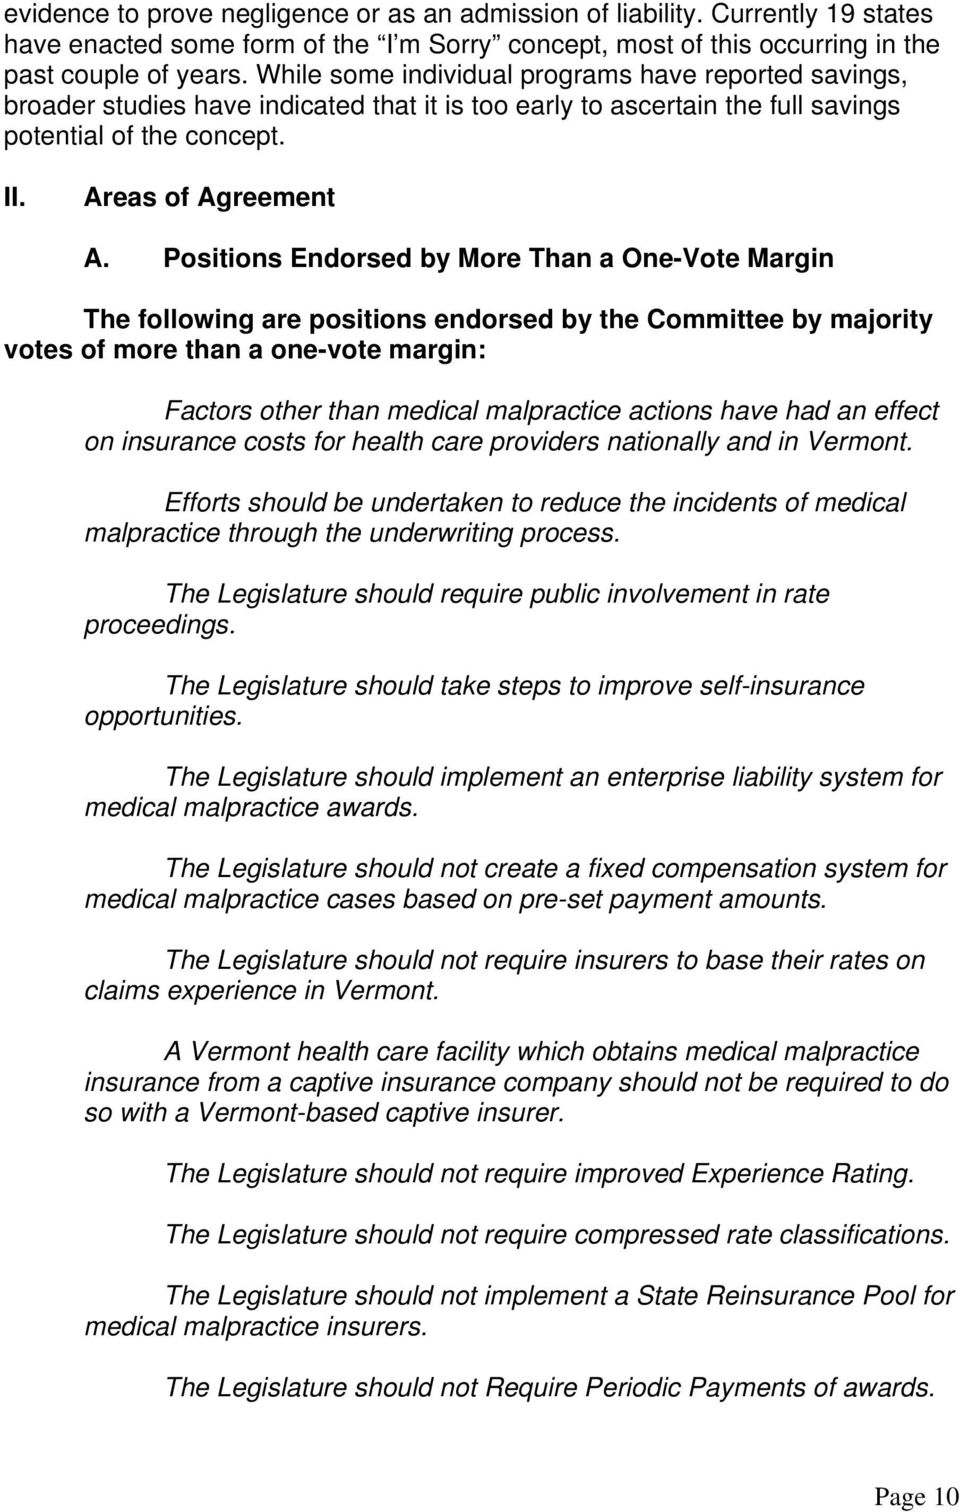 Positions Endorsed by More Than a One-Vote Margin The following are positions endorsed by the Committee by majority votes of more than a one-vote margin: Factors other than medical malpractice